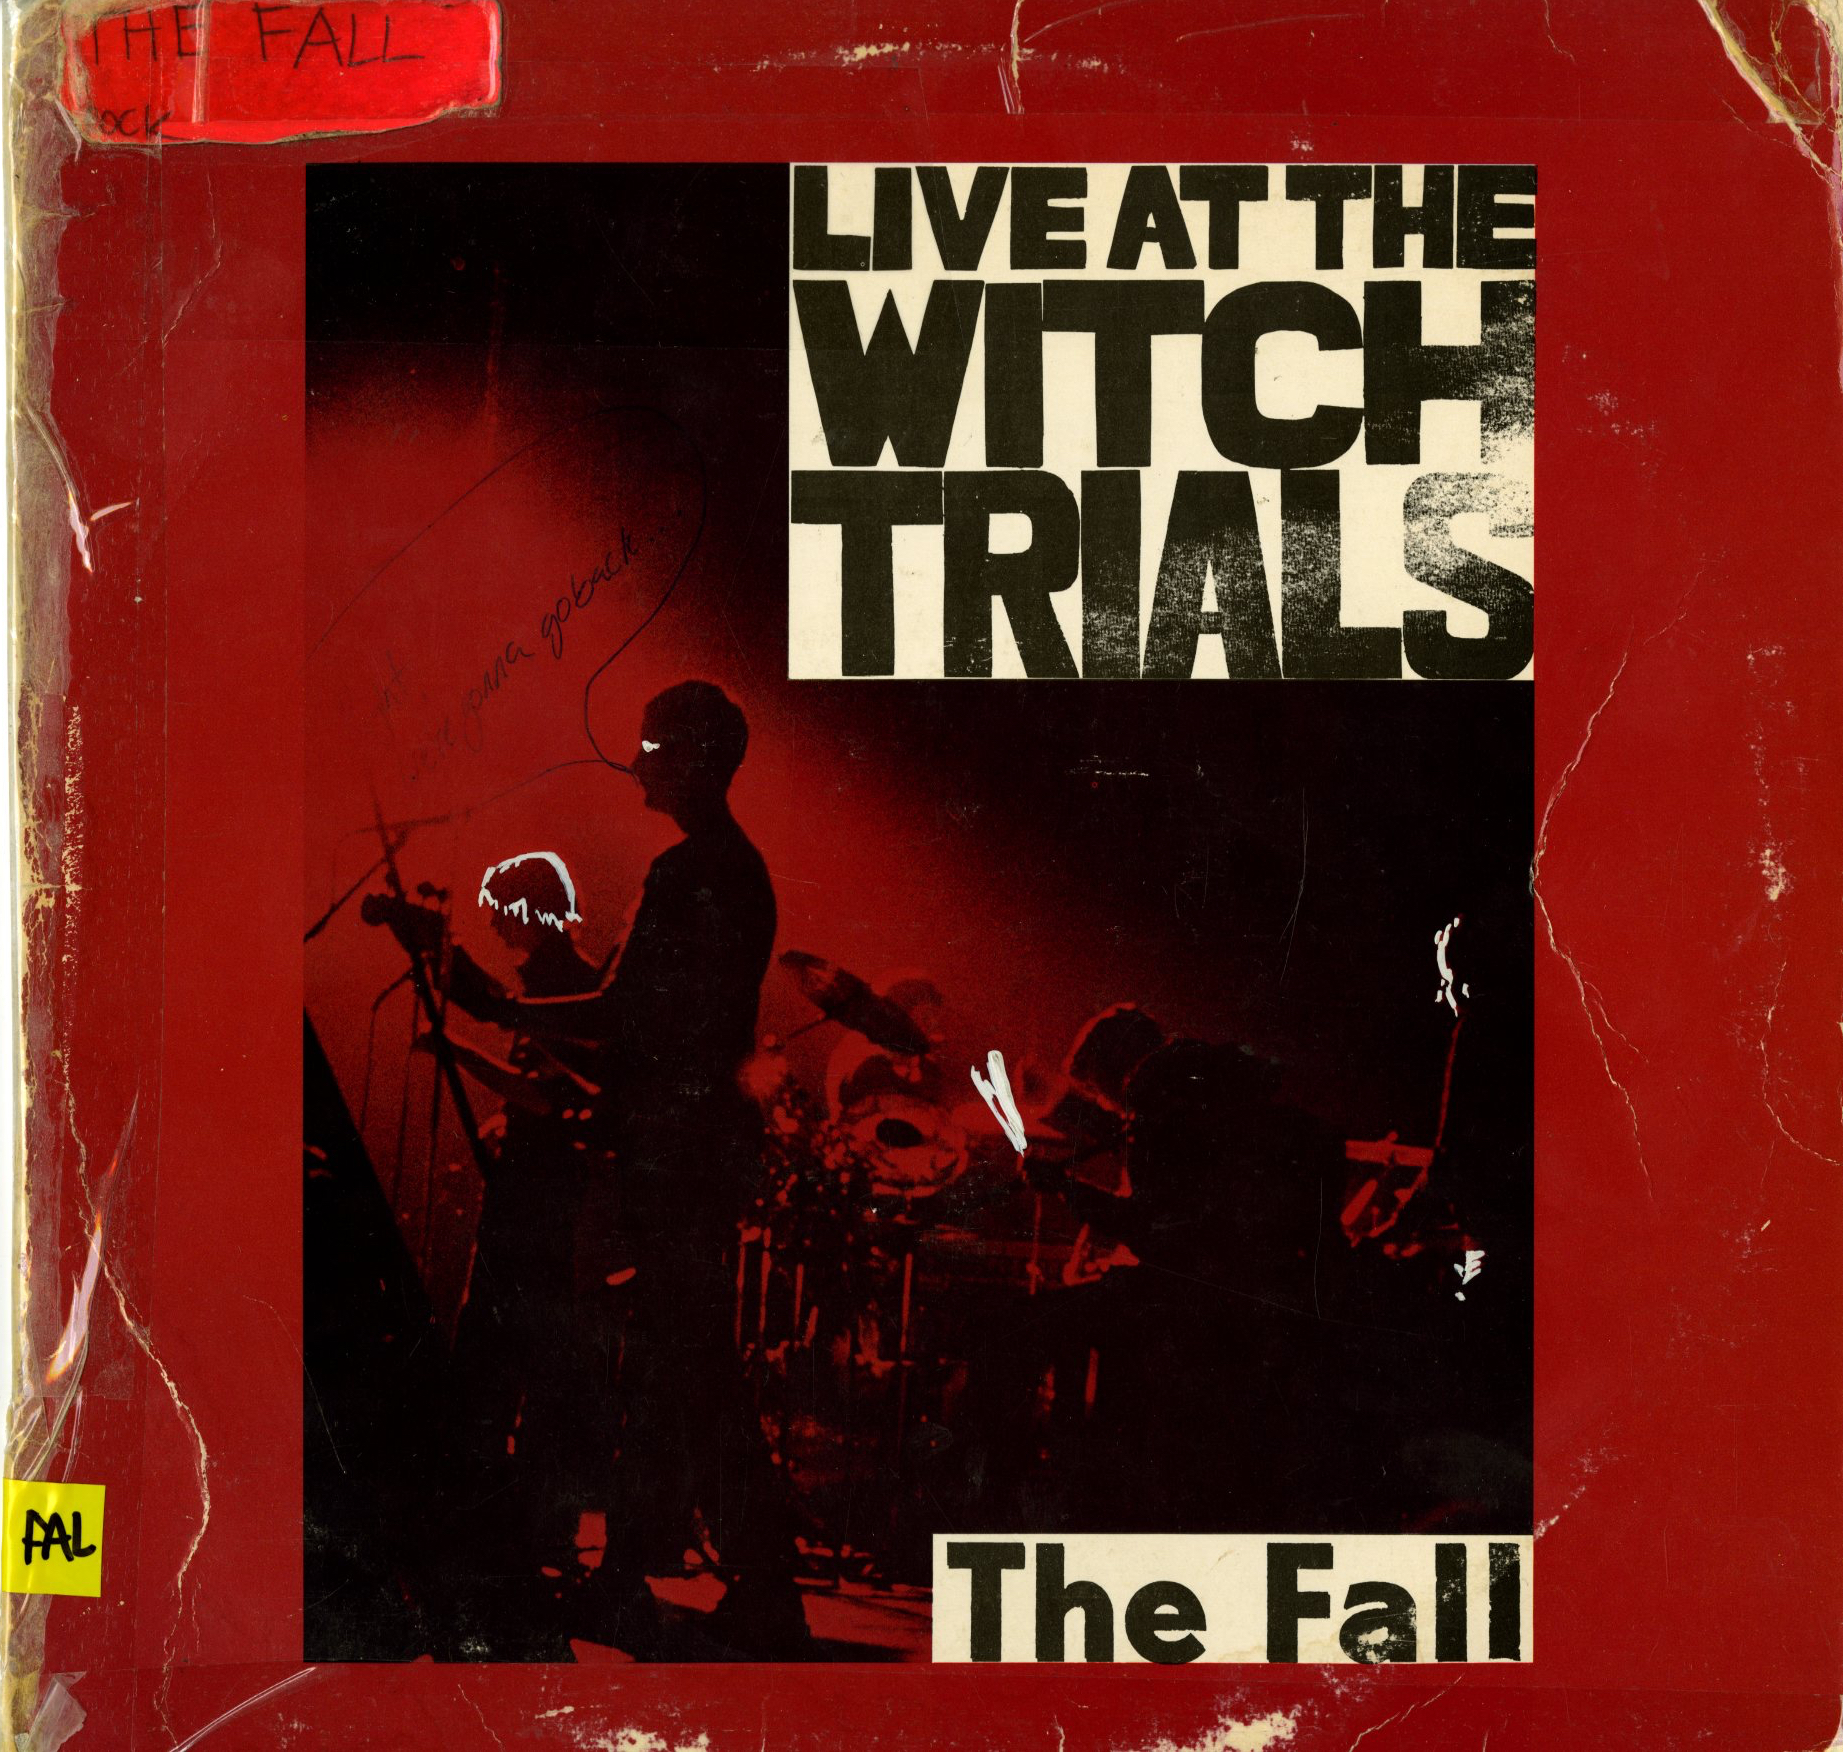 The_Fall_-_Live_at_the_Witch_Trials